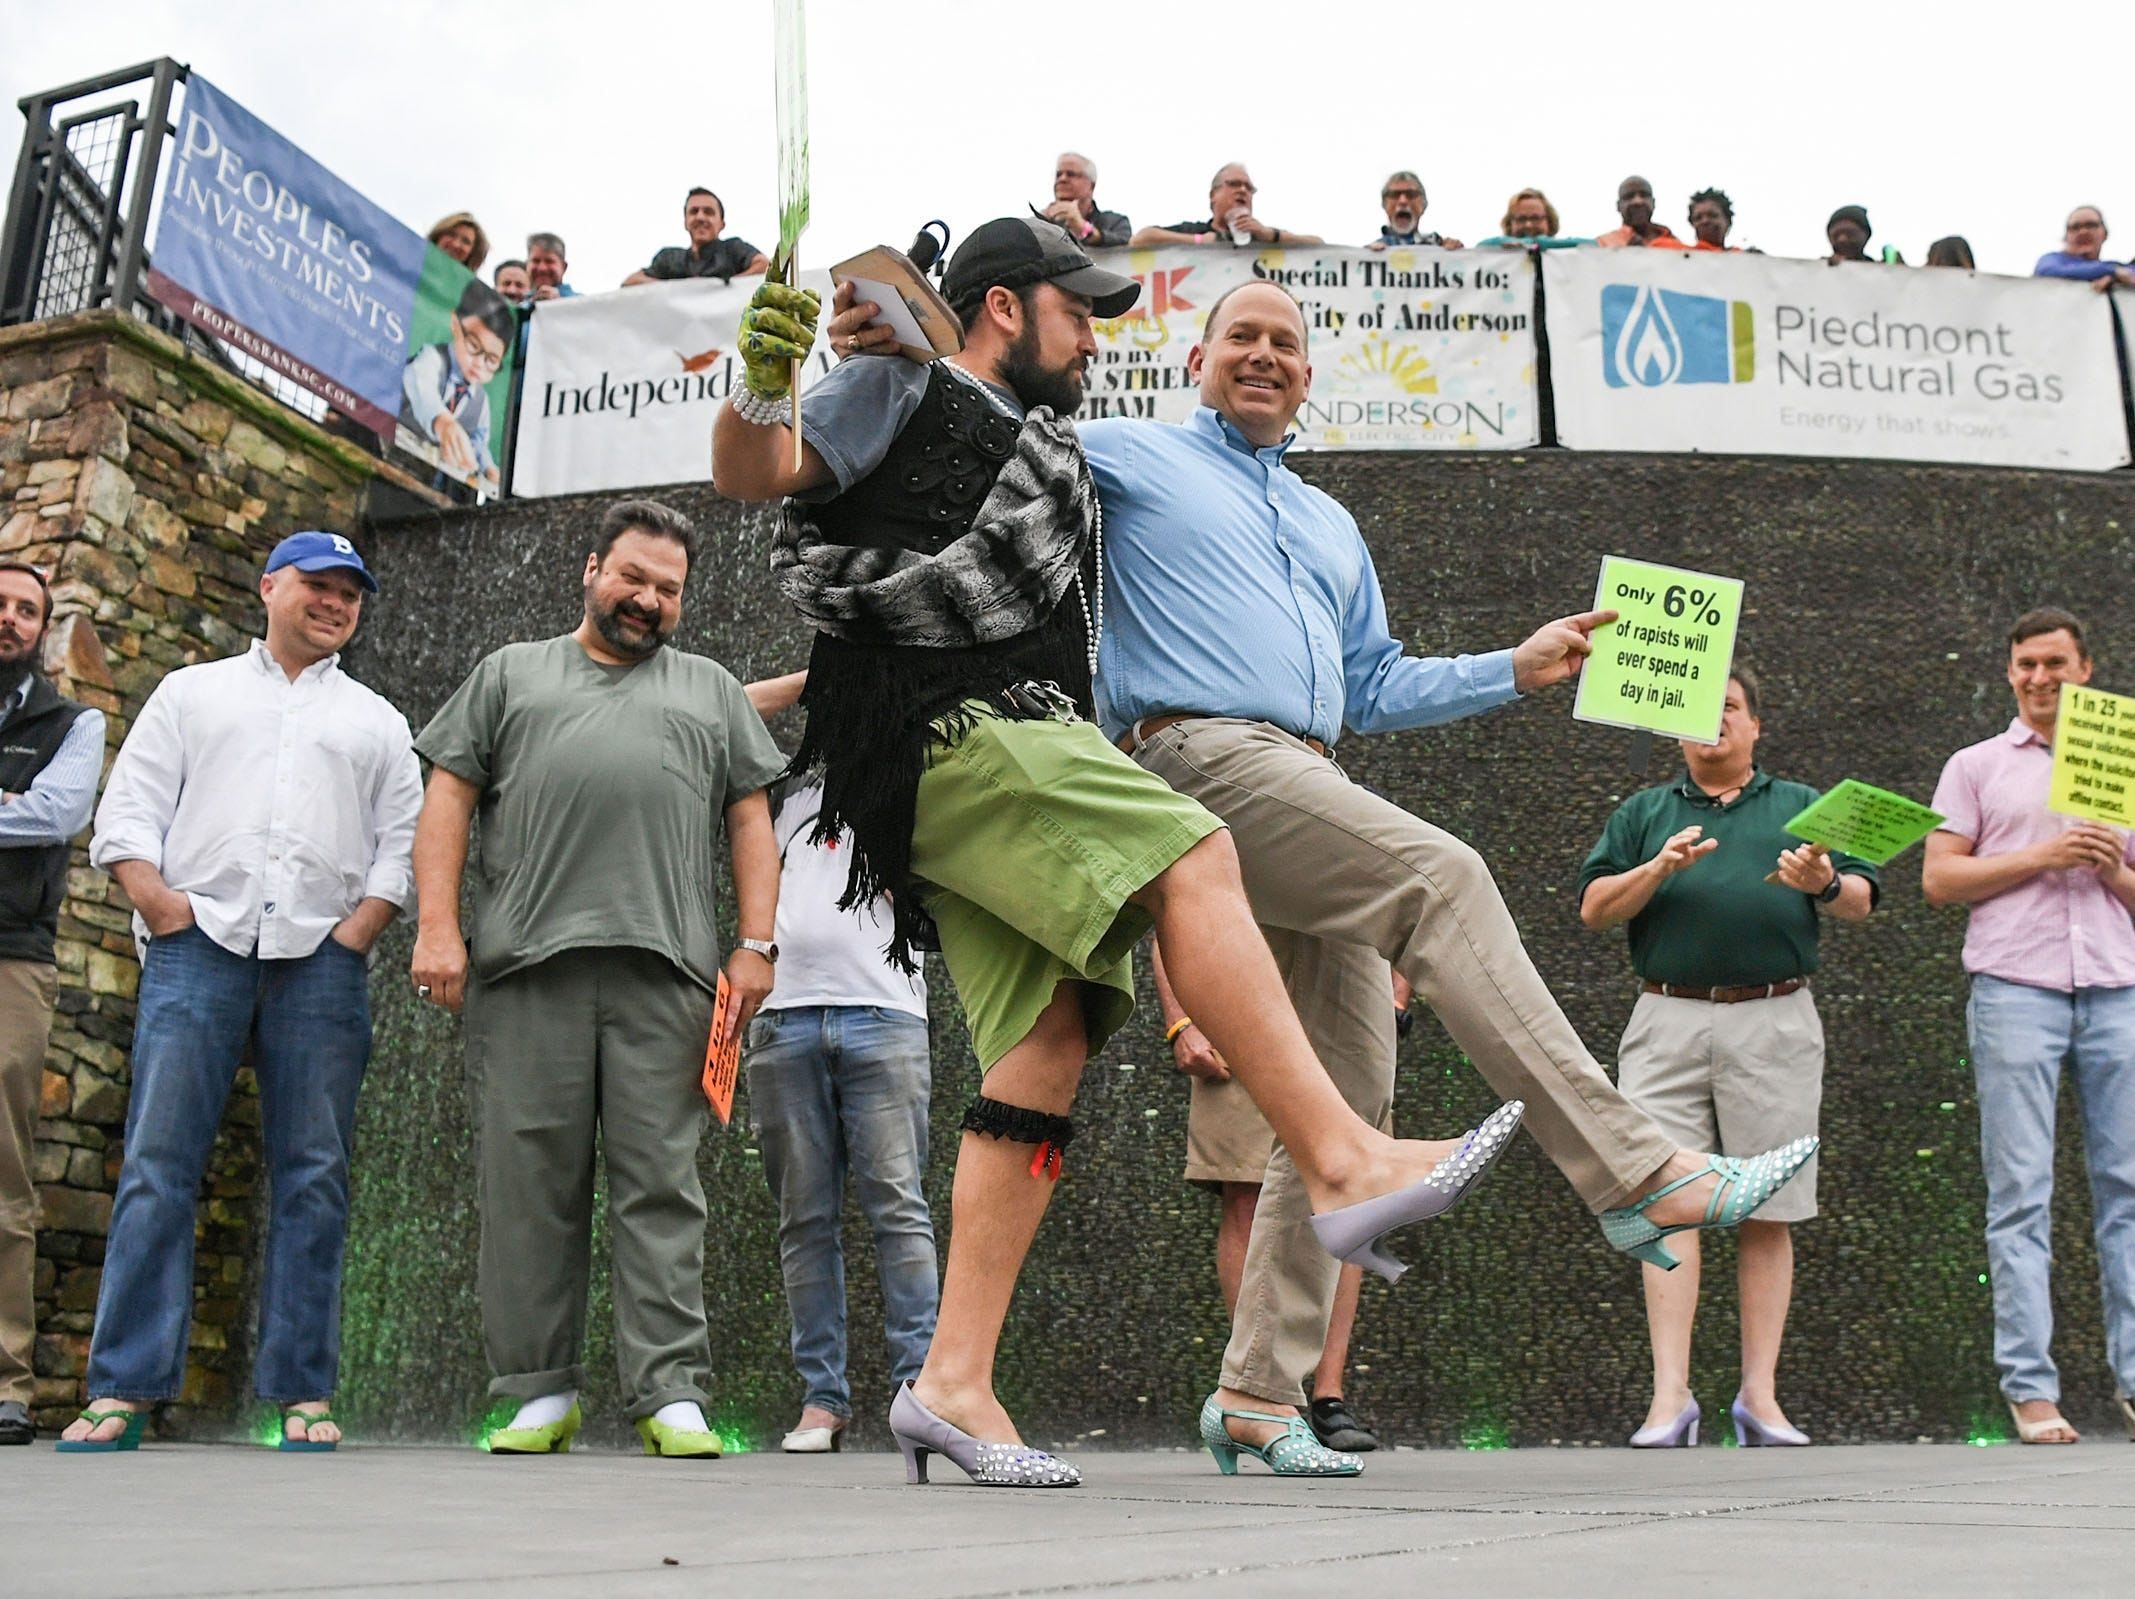 """David Thornton, left, and Virgil Hobbs, right, show a little dance with high heels during Foothills Alliance """"Walk a Mile in Her Shoes"""" event at Carolina Wren Park in downtown Anderson Thursday. The walk is held each year to bring awareness to National Sexual Assault Awareness Month during a break in the Main Street Program Block Party."""